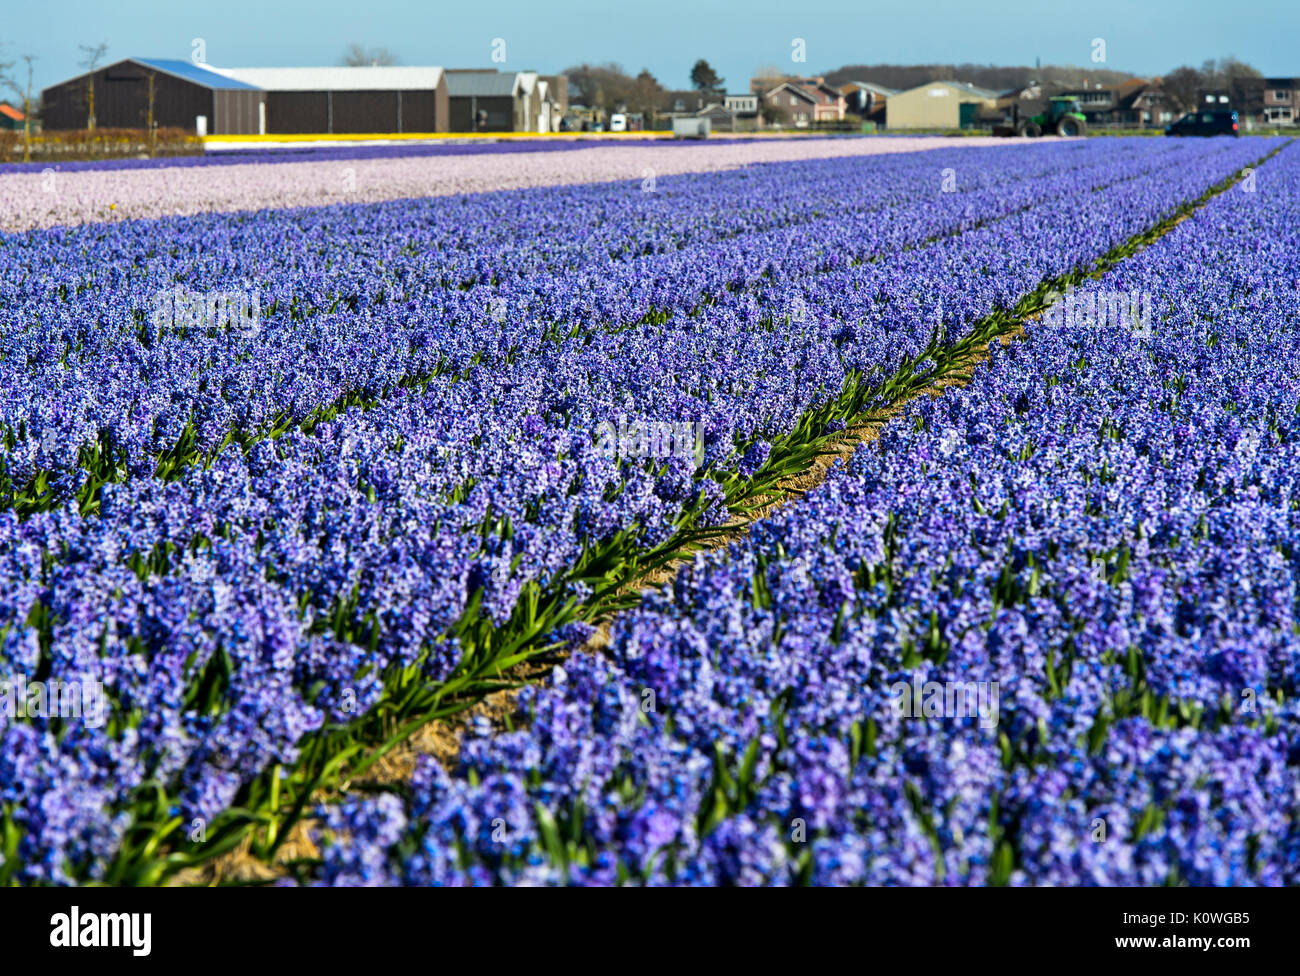 Cultivation area of blooming blue hyacinths, Bollenstreek region, South-Holland, Netherlands Stock Photo